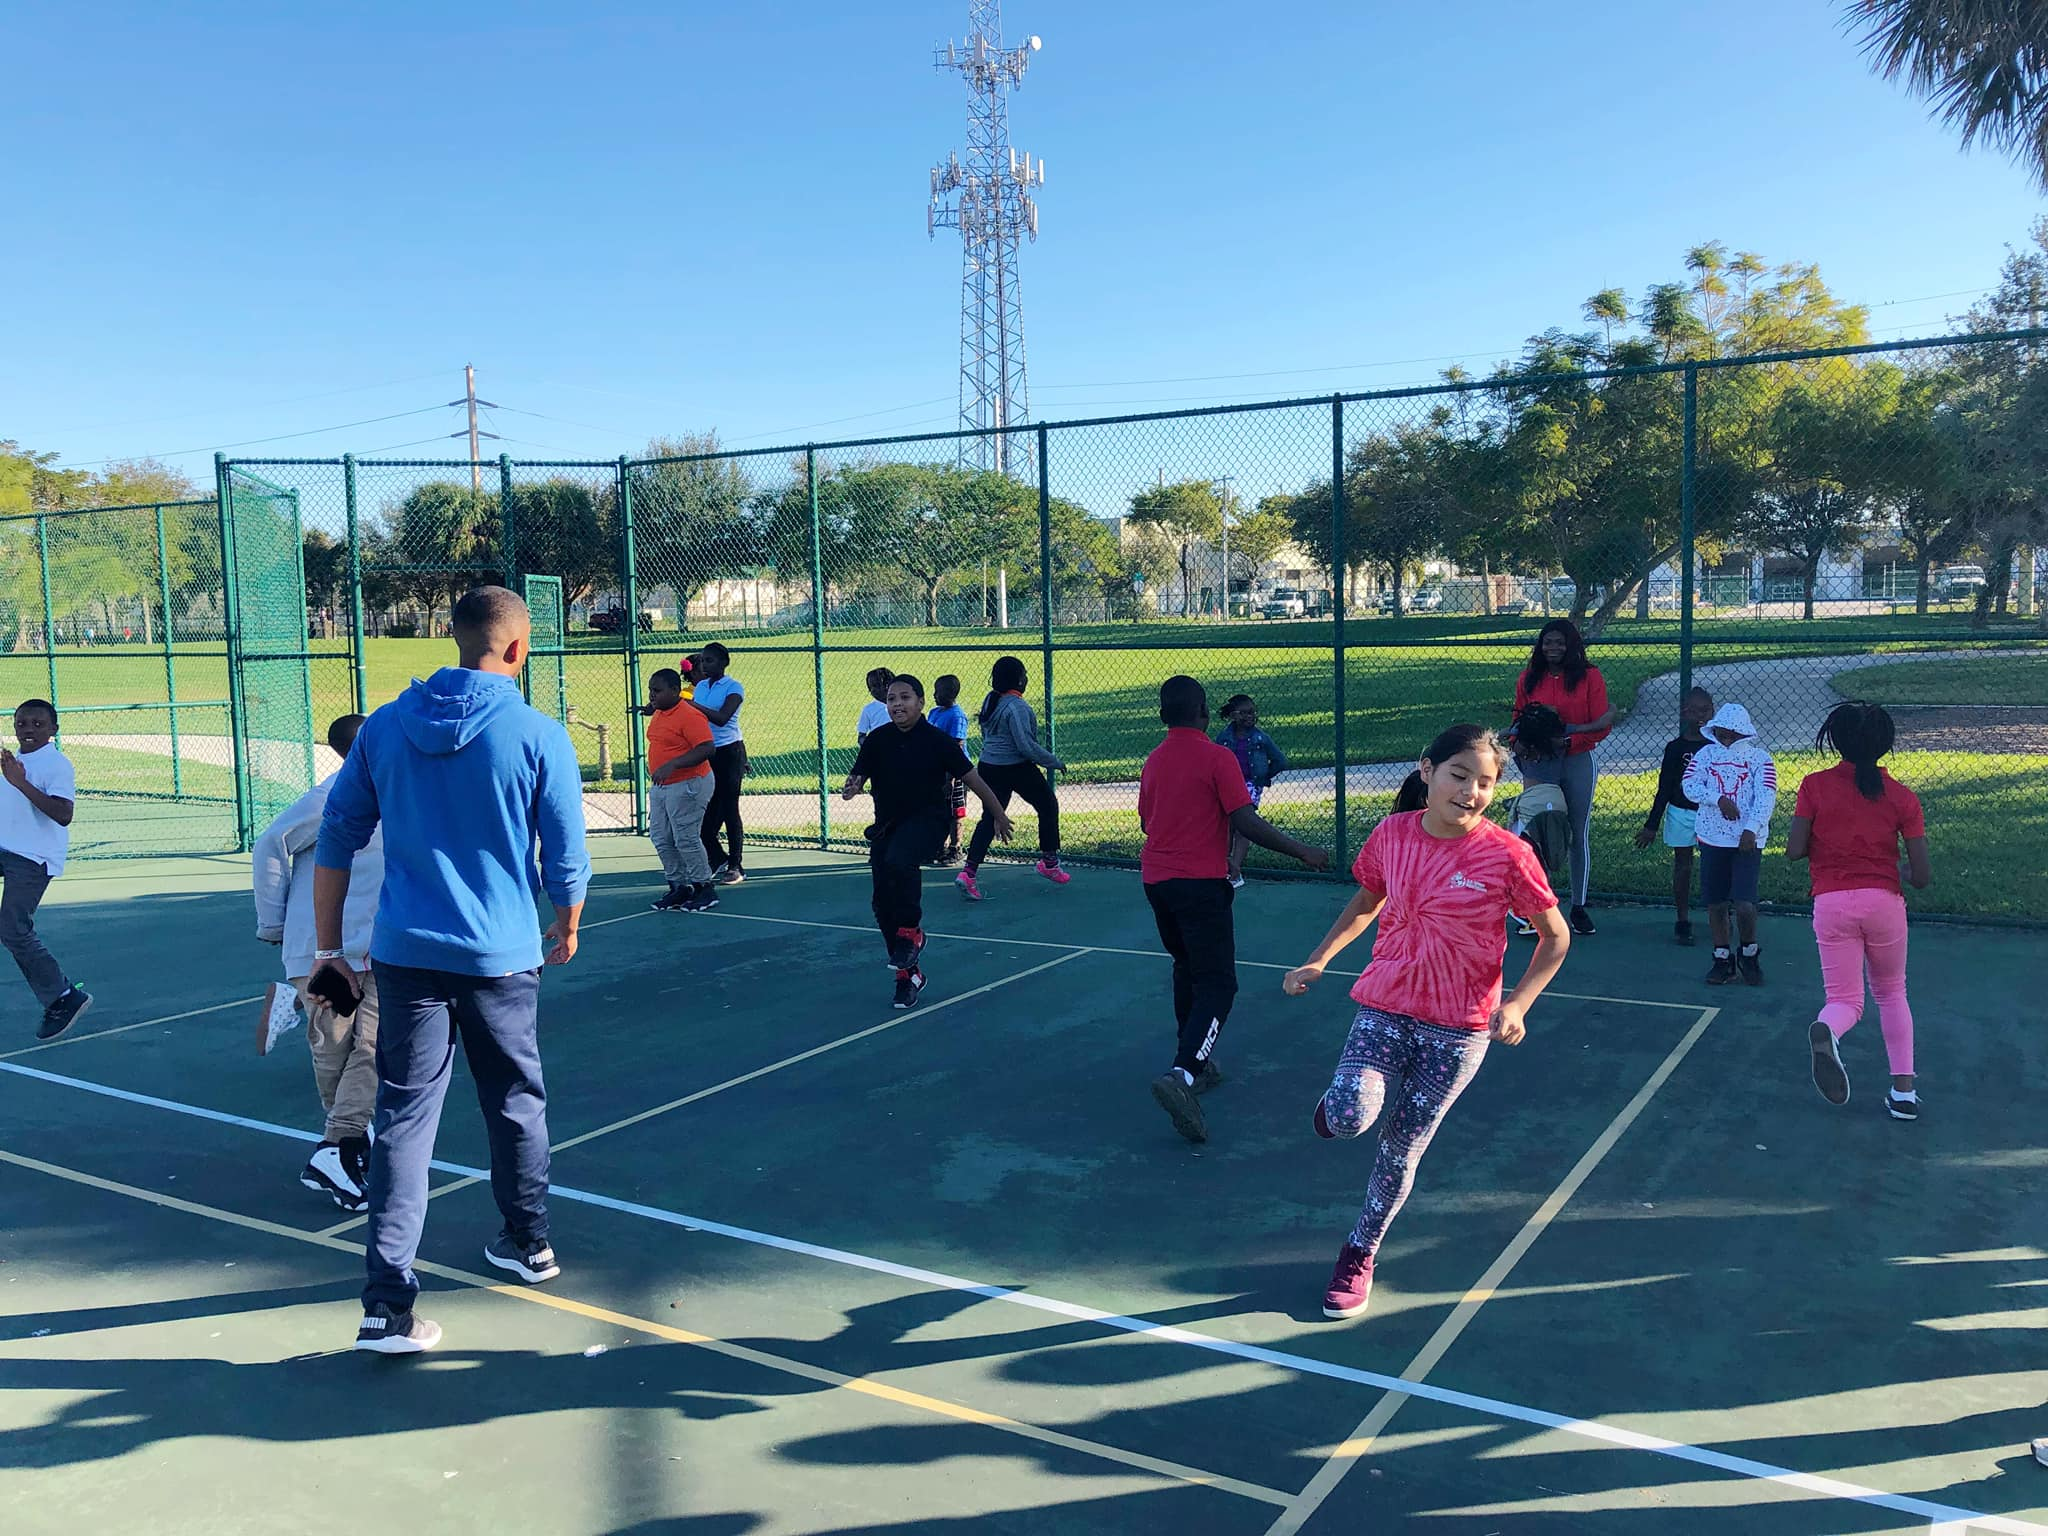 Our students warming up for their tennis lesson at Catherine Strong Park.